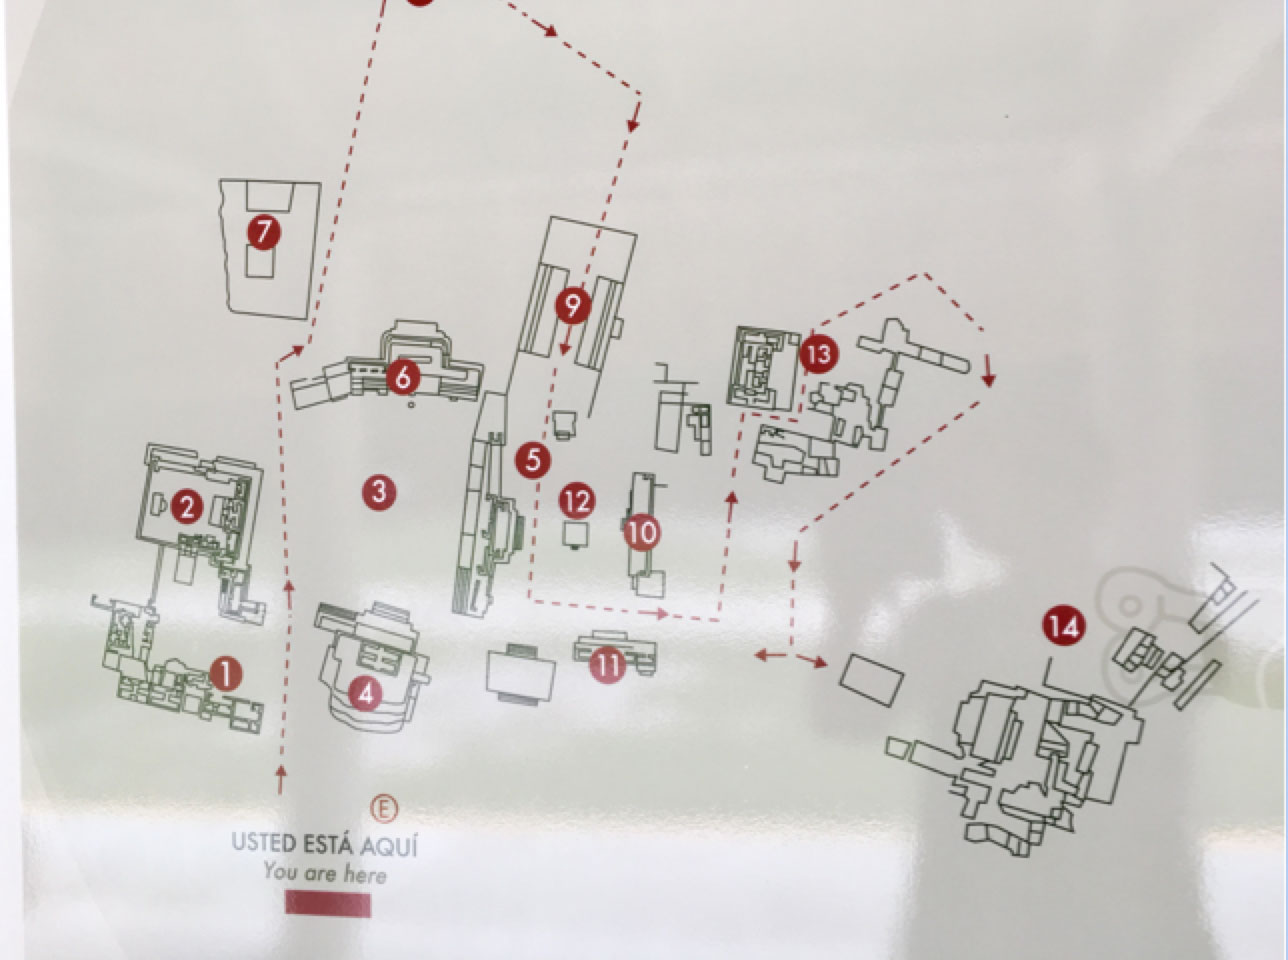 The site map.